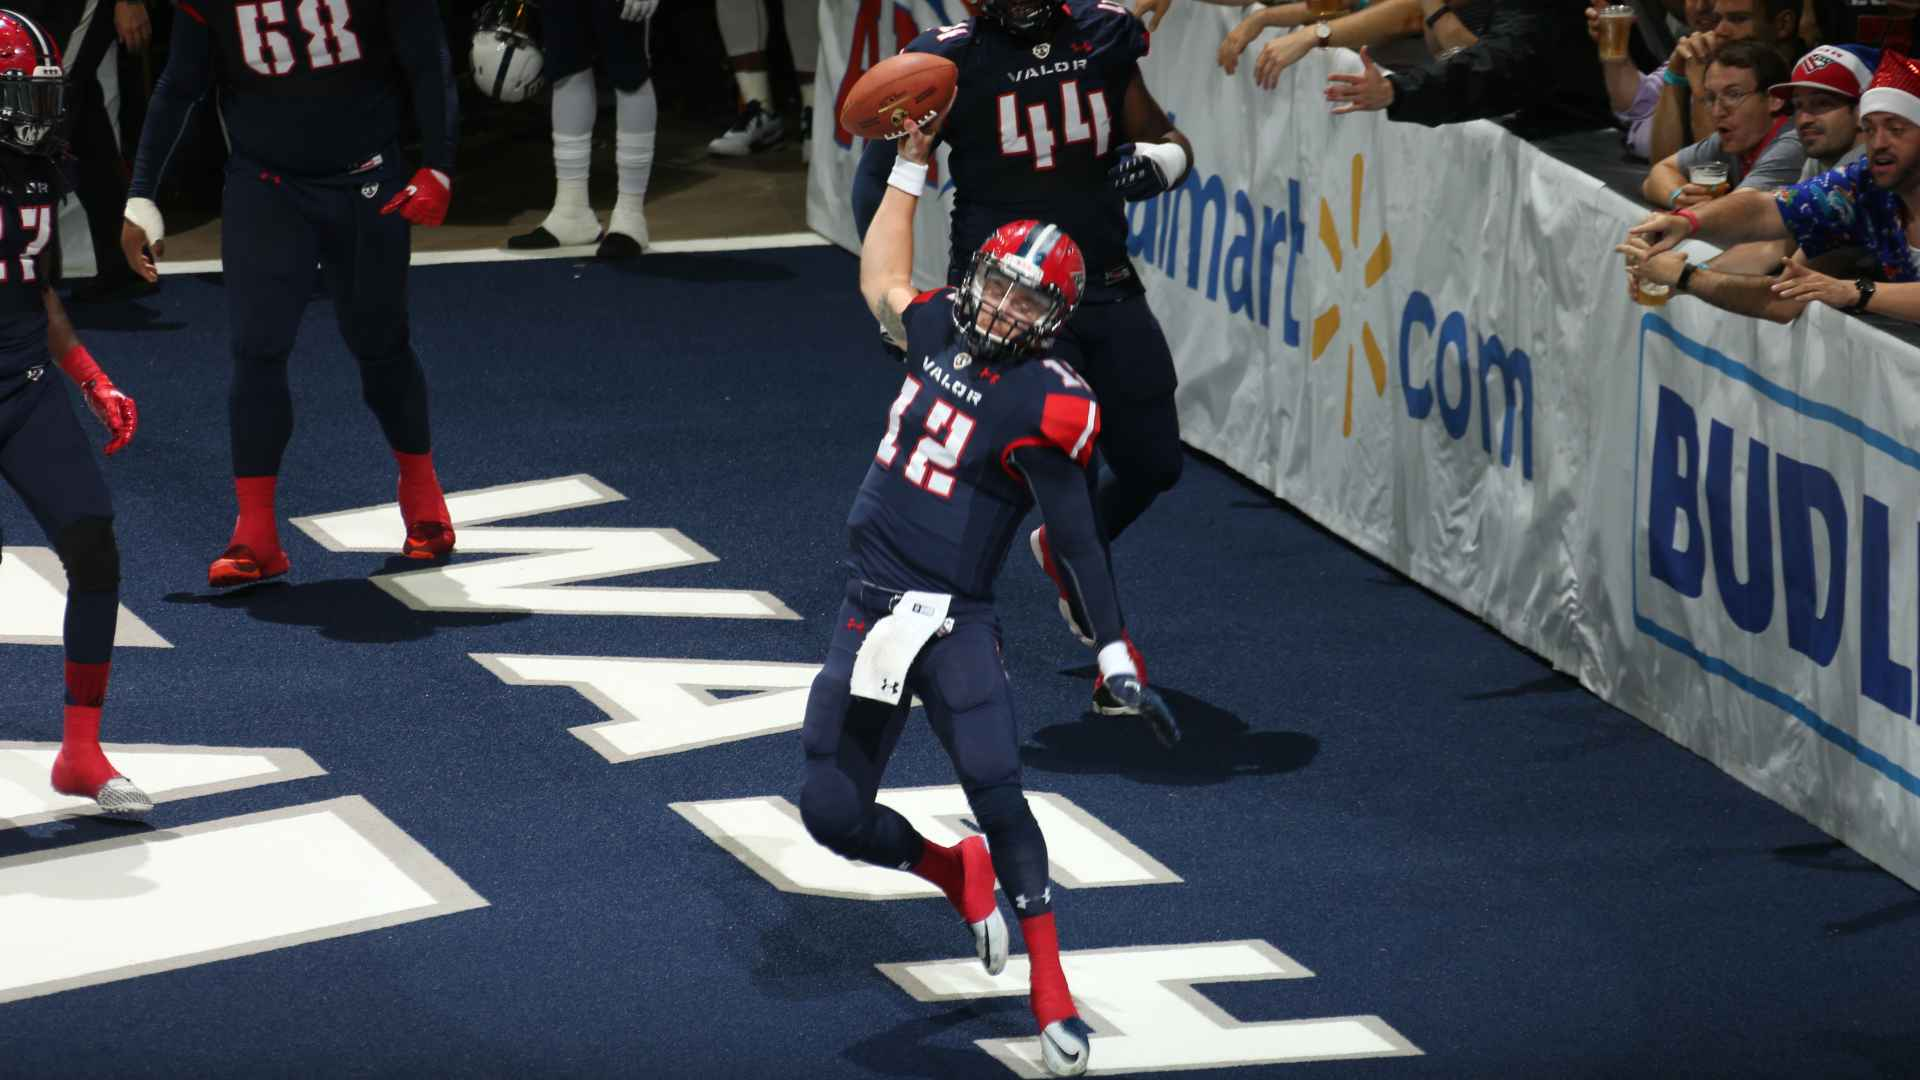 C/O Washington Valor